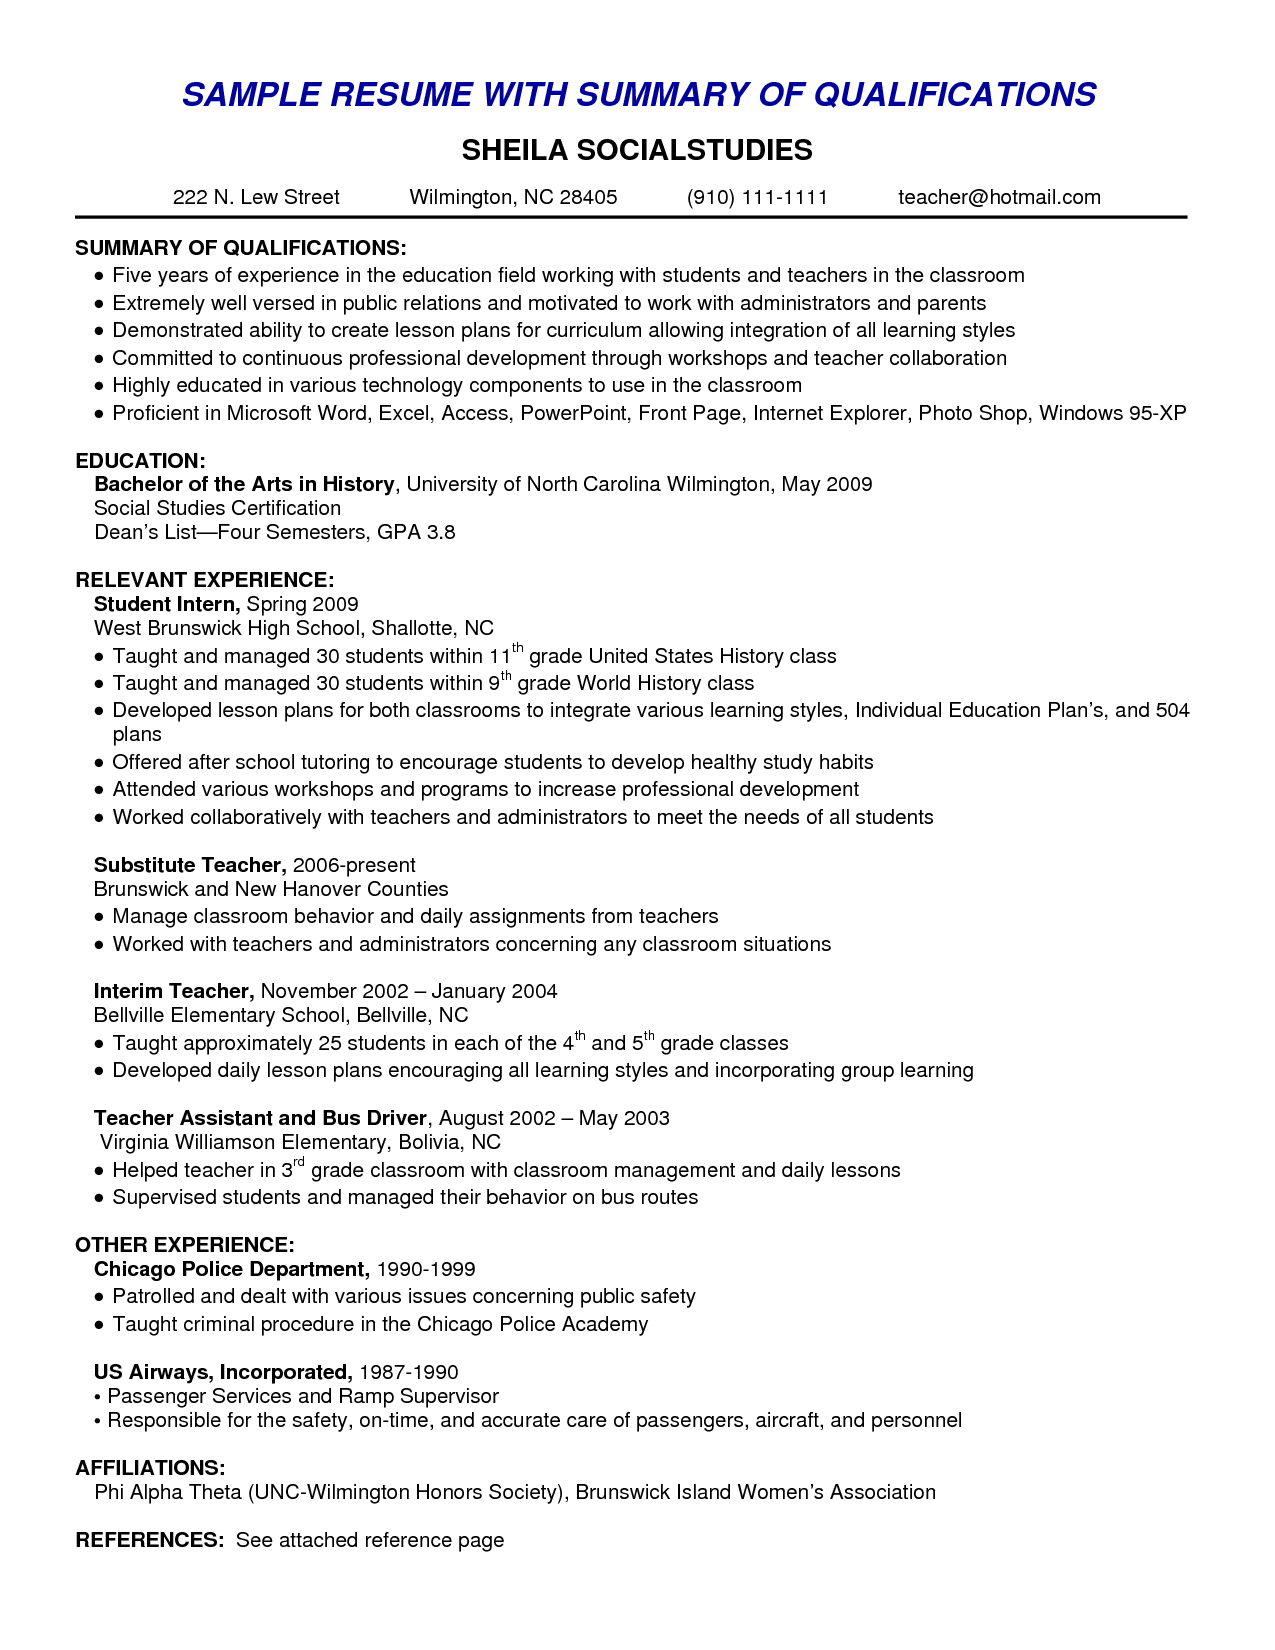 Sample Curriculum Vitae Summary Letter on for accountant partner, science research, graduate school, for phd, for administrative assistant, for professional contract, medical doctor, offer letter,